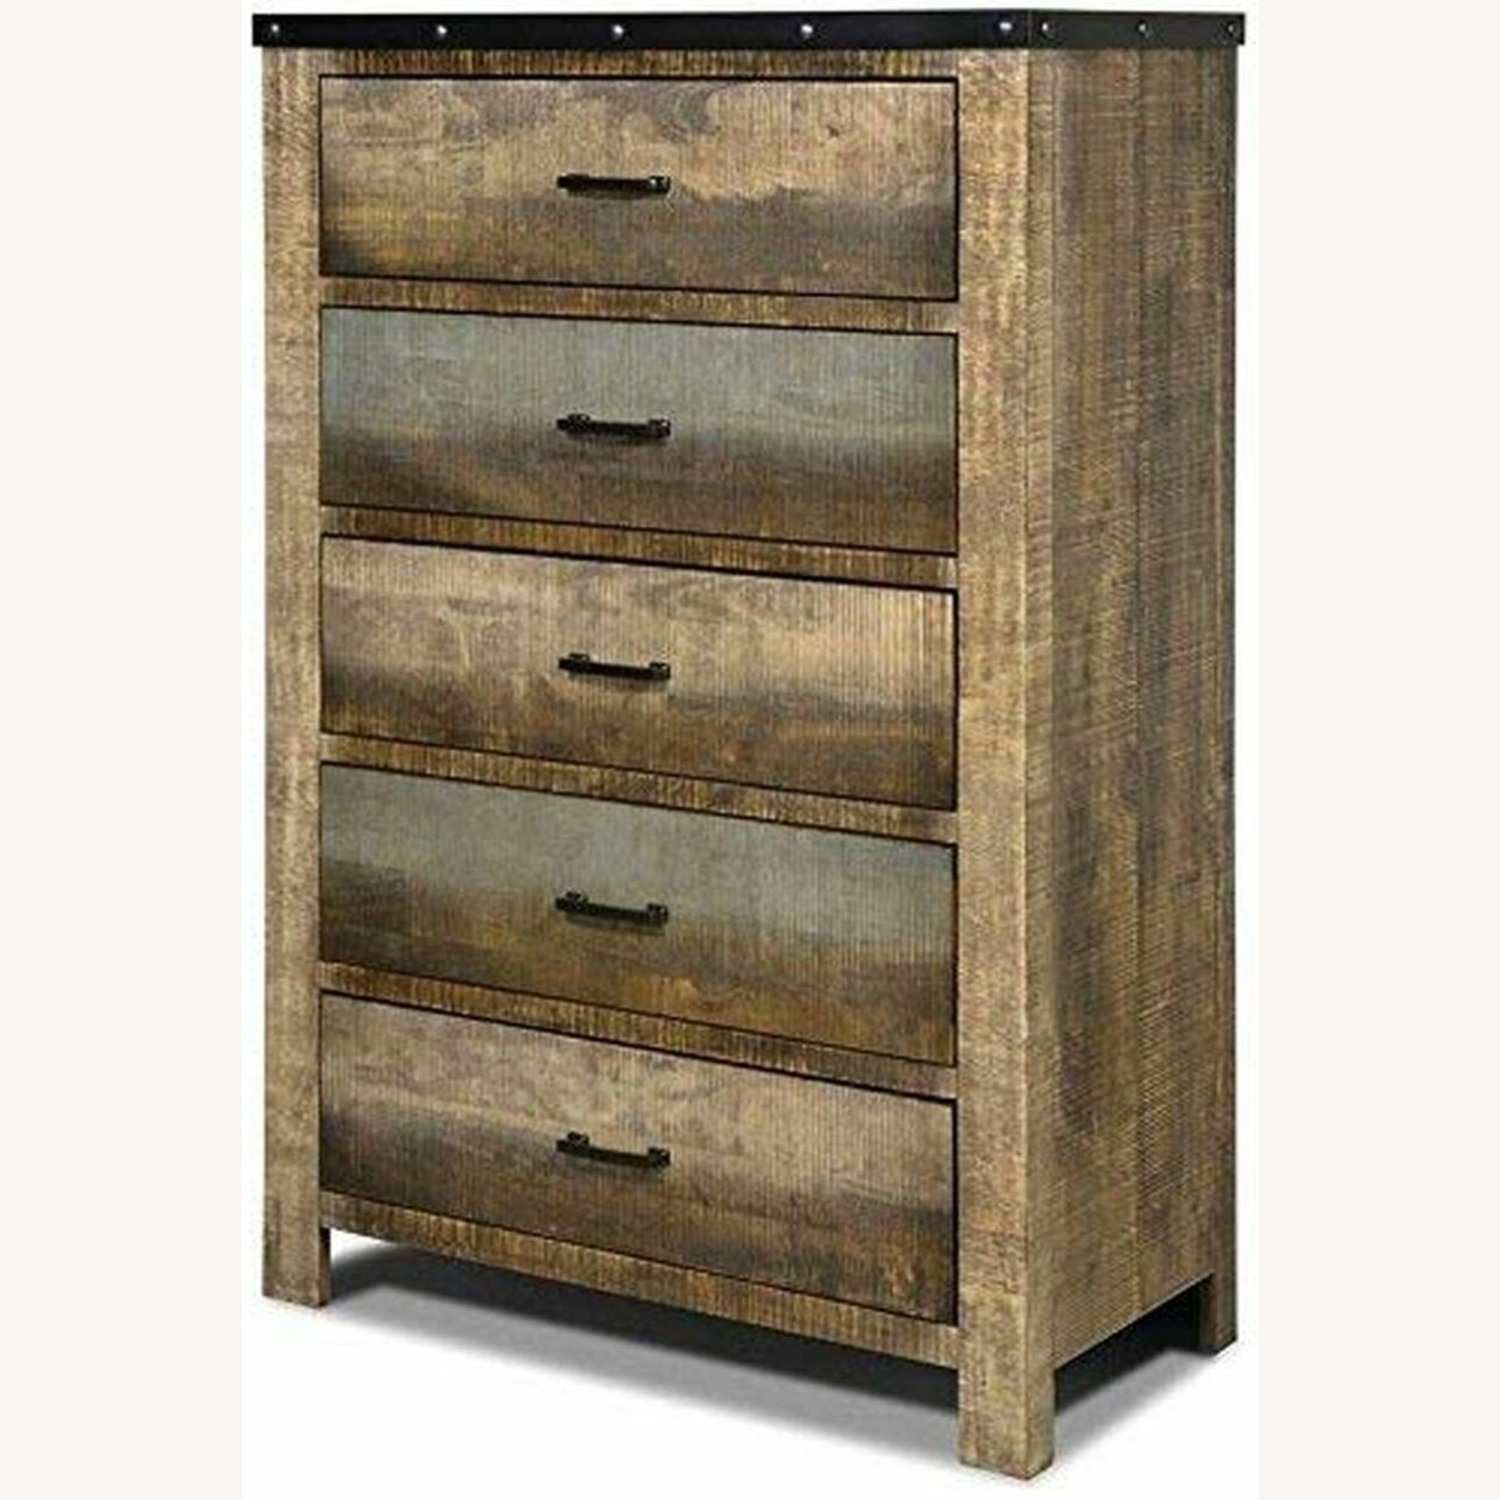 Chest In Antique Multi-Color Wood Finish - image-1